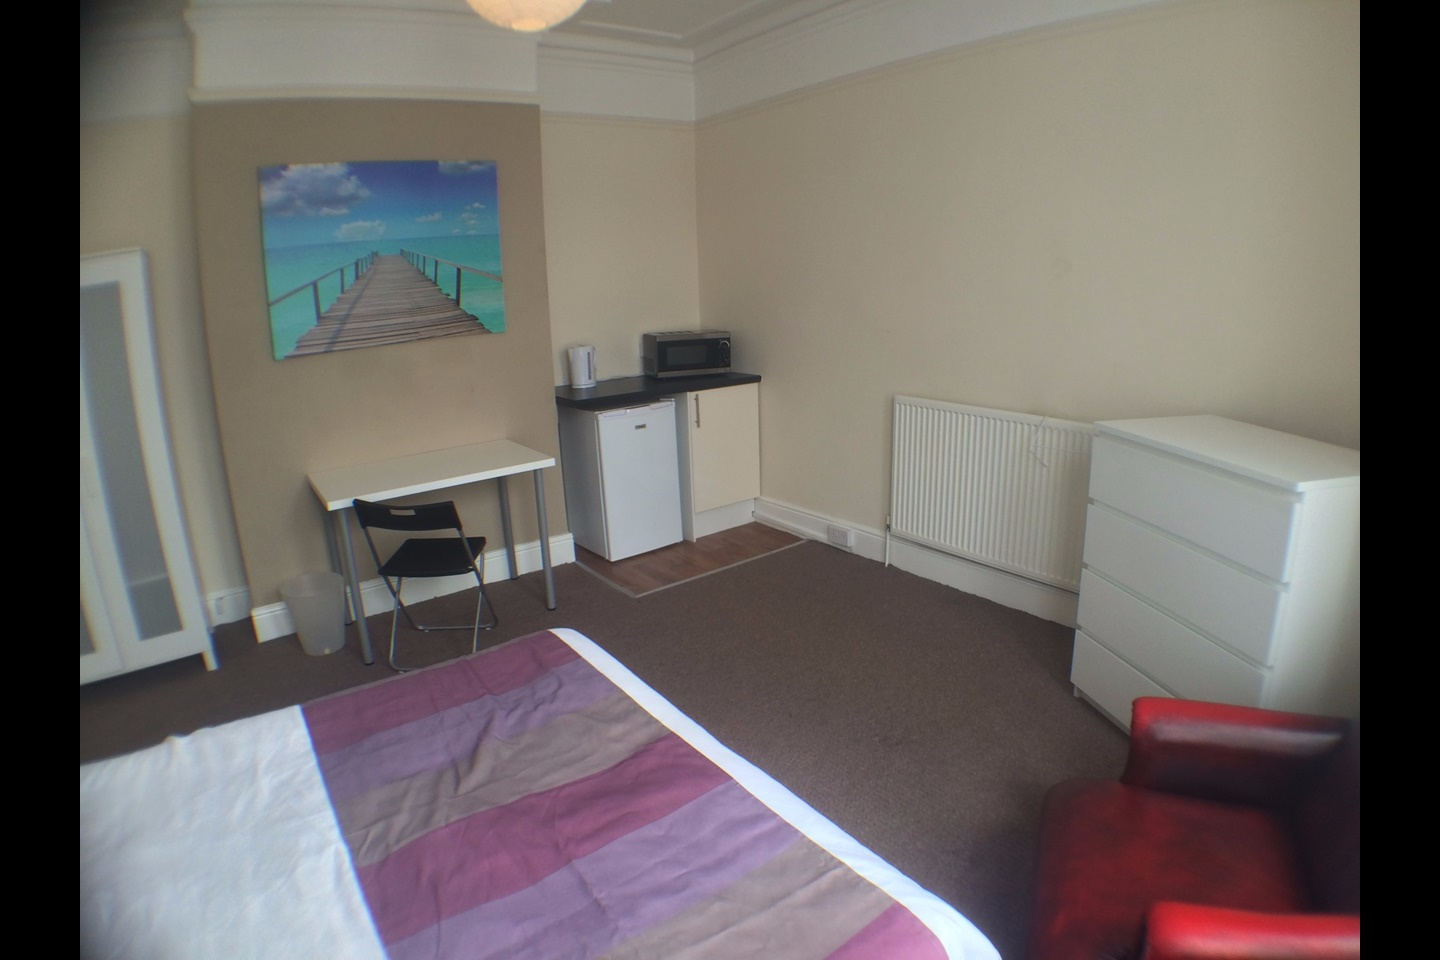 Rent A Room In Castleford